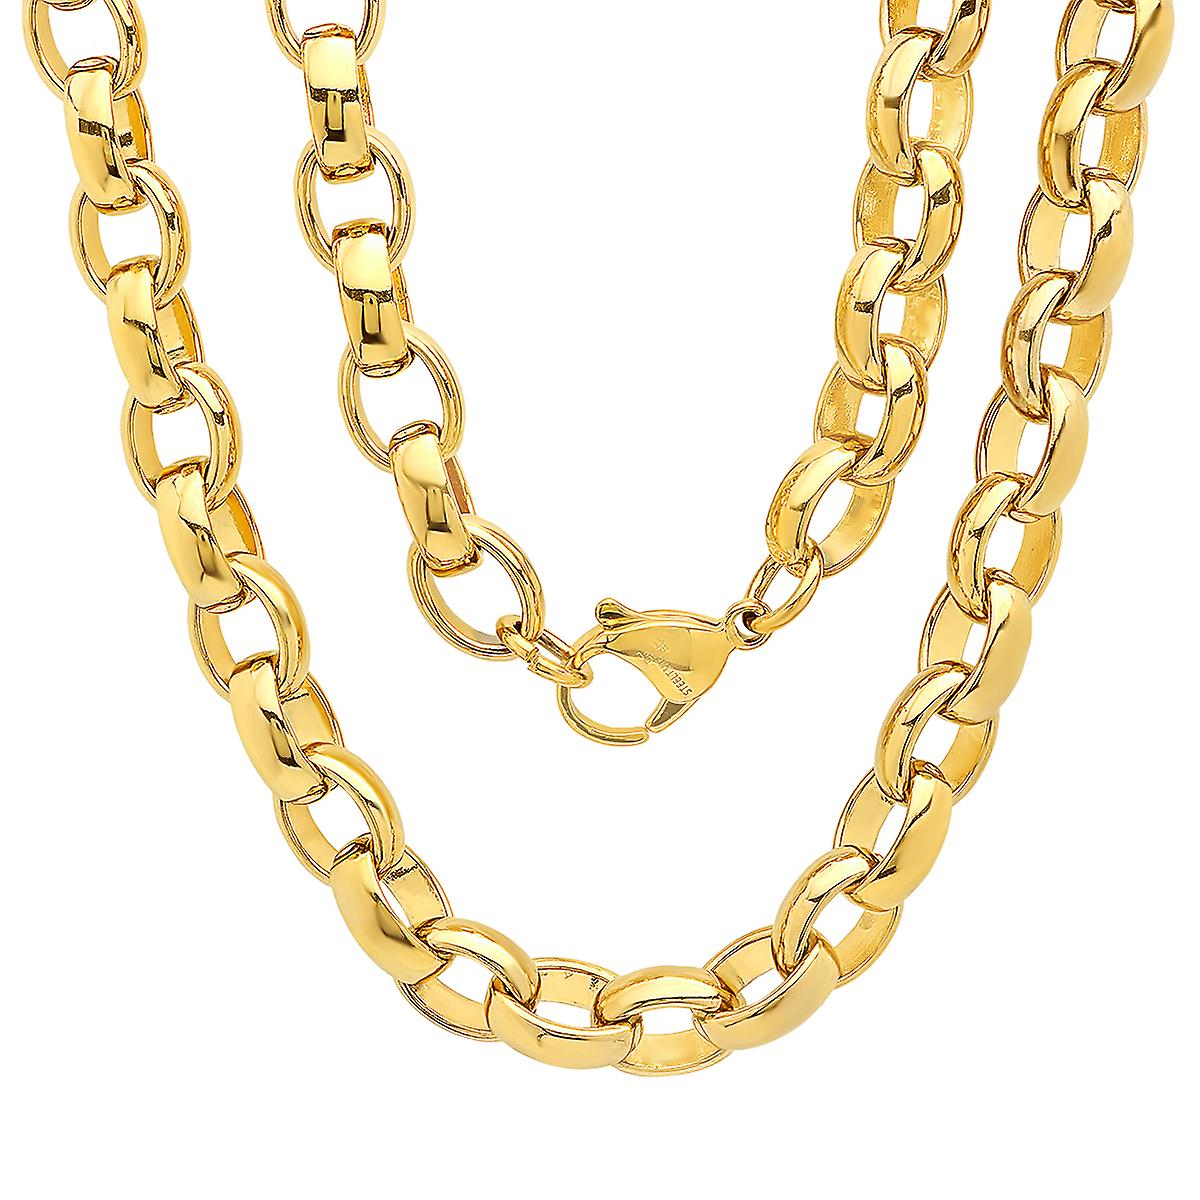 Ladies 18K Gold Plated Stainless Steel Chain Link Necklace